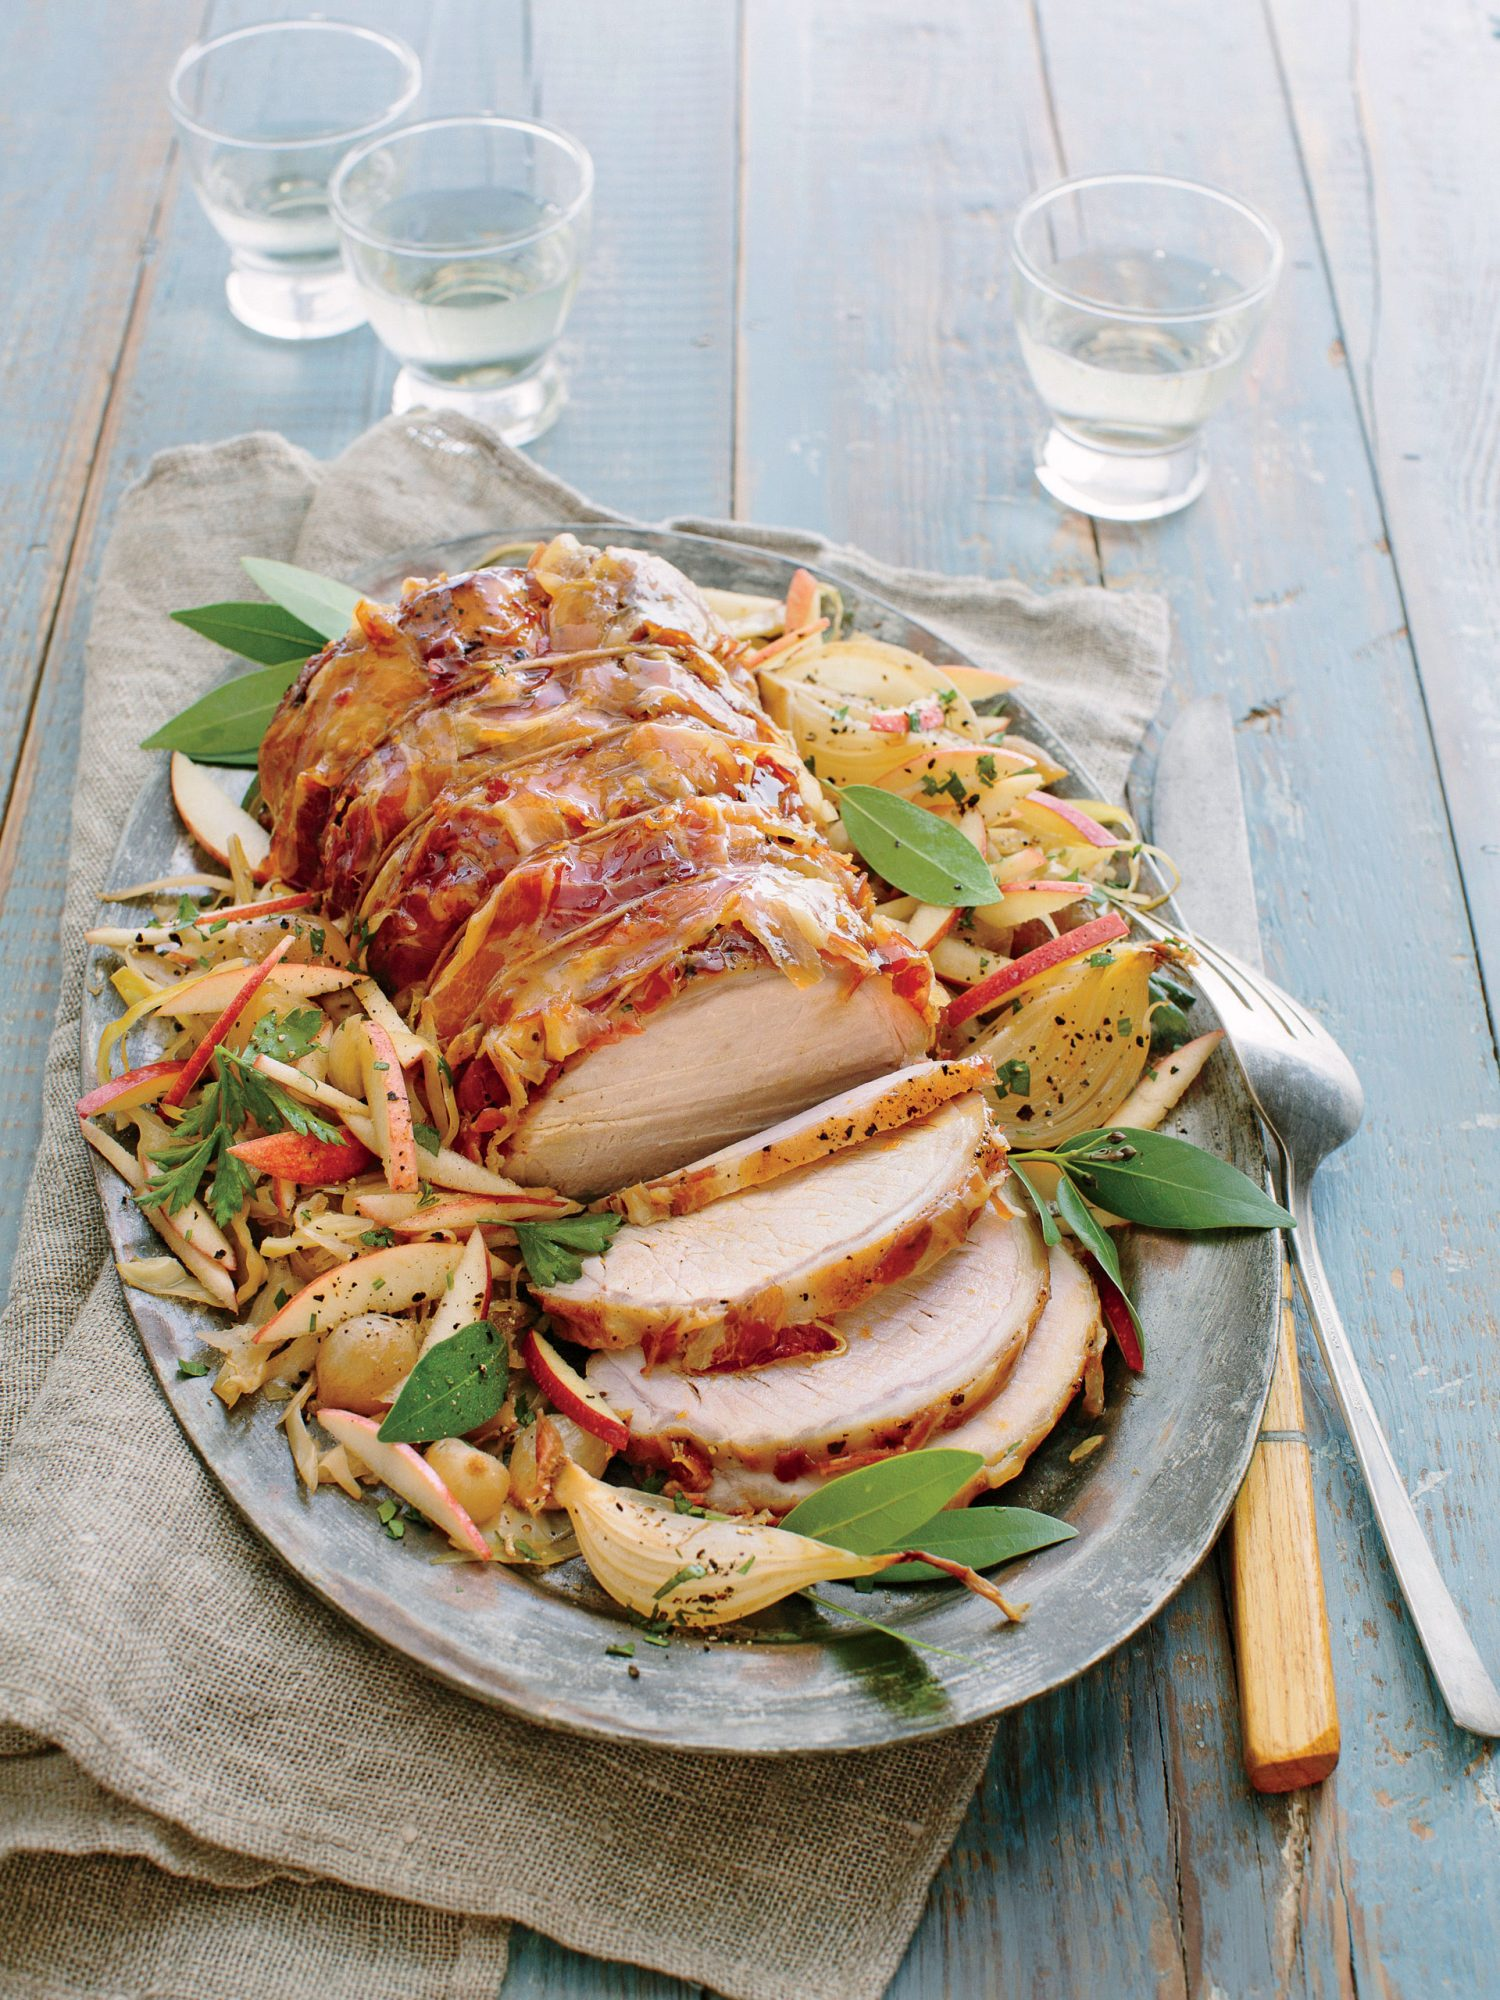 Pork and Sauerkraut Recipe with Apples and Bacon